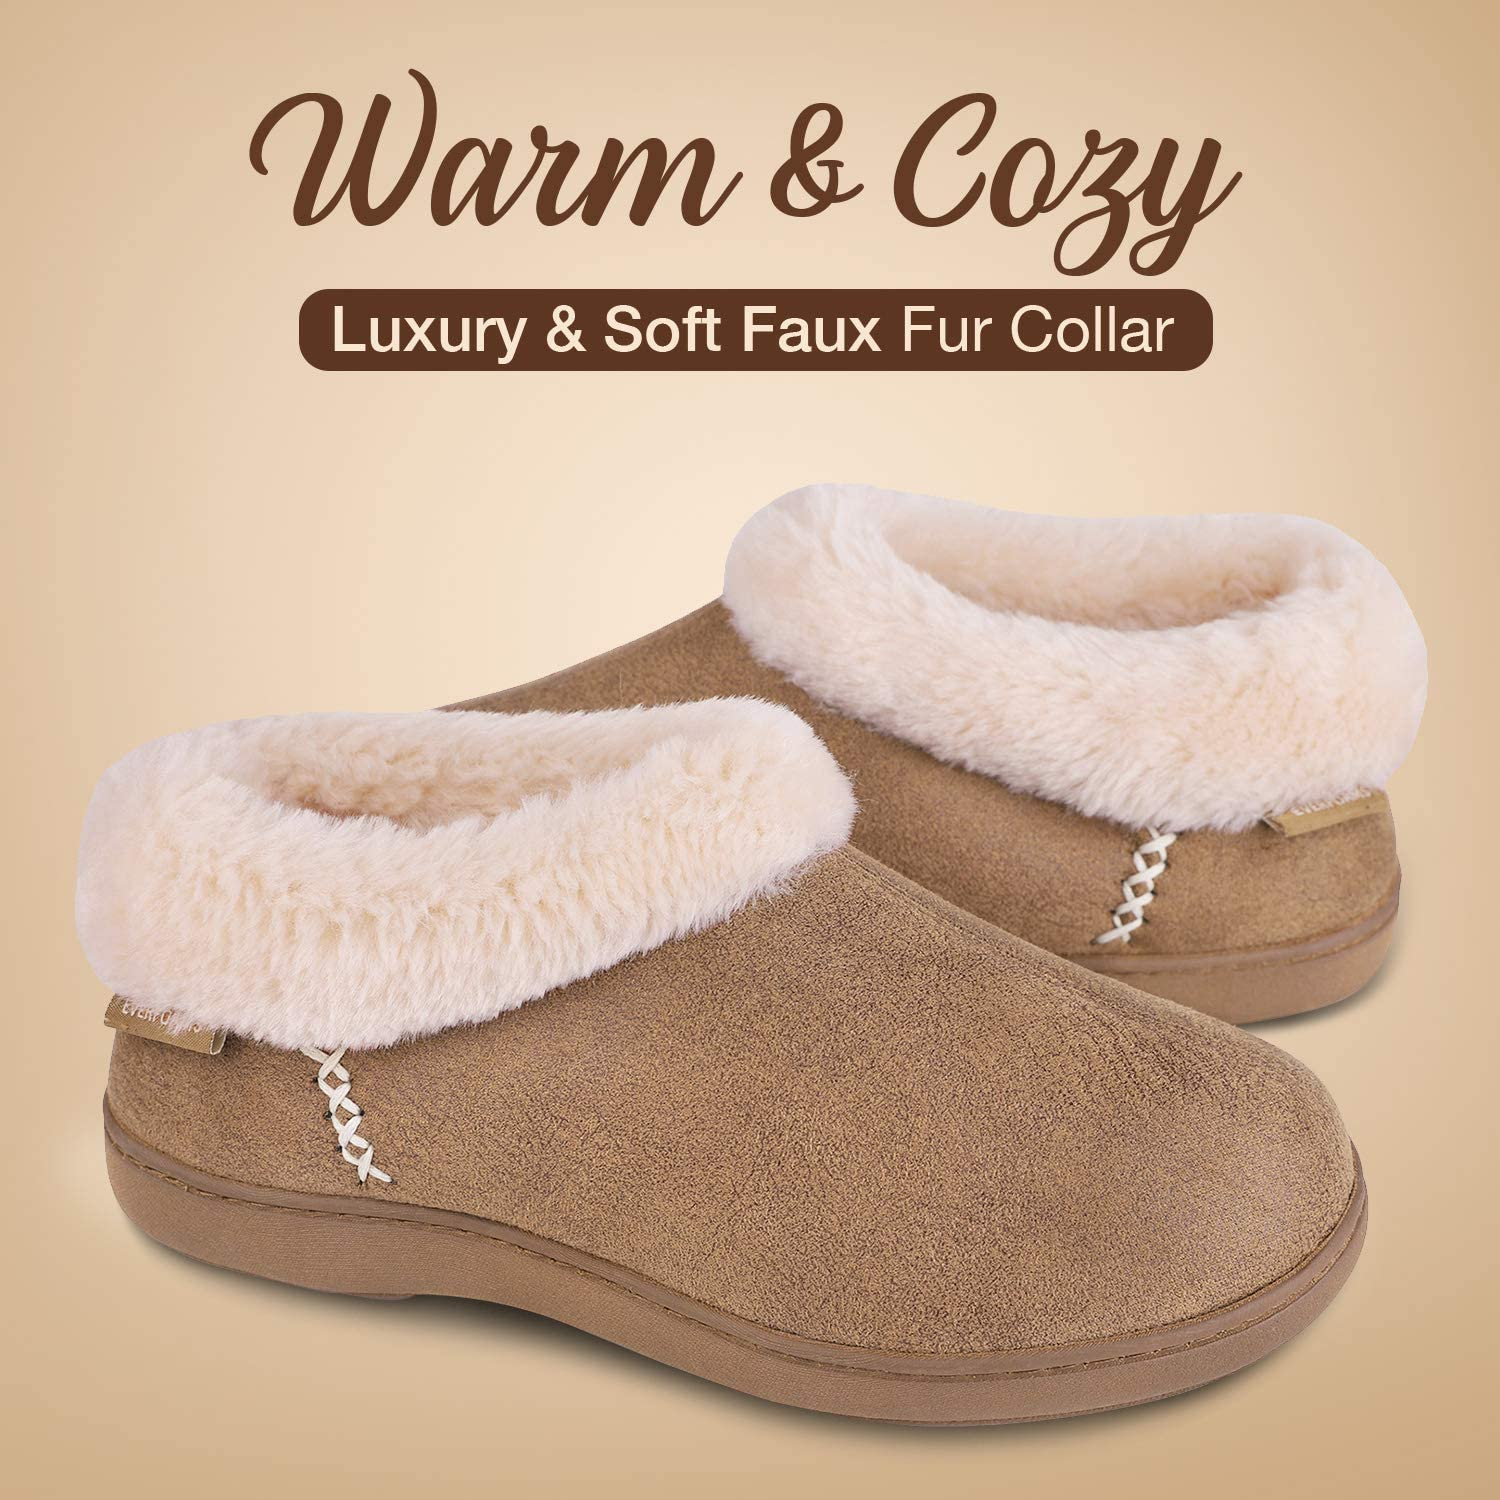 EverFoams Ladies Suede Fuzzy Plush Lined Slippers with Cozy Memory Foam